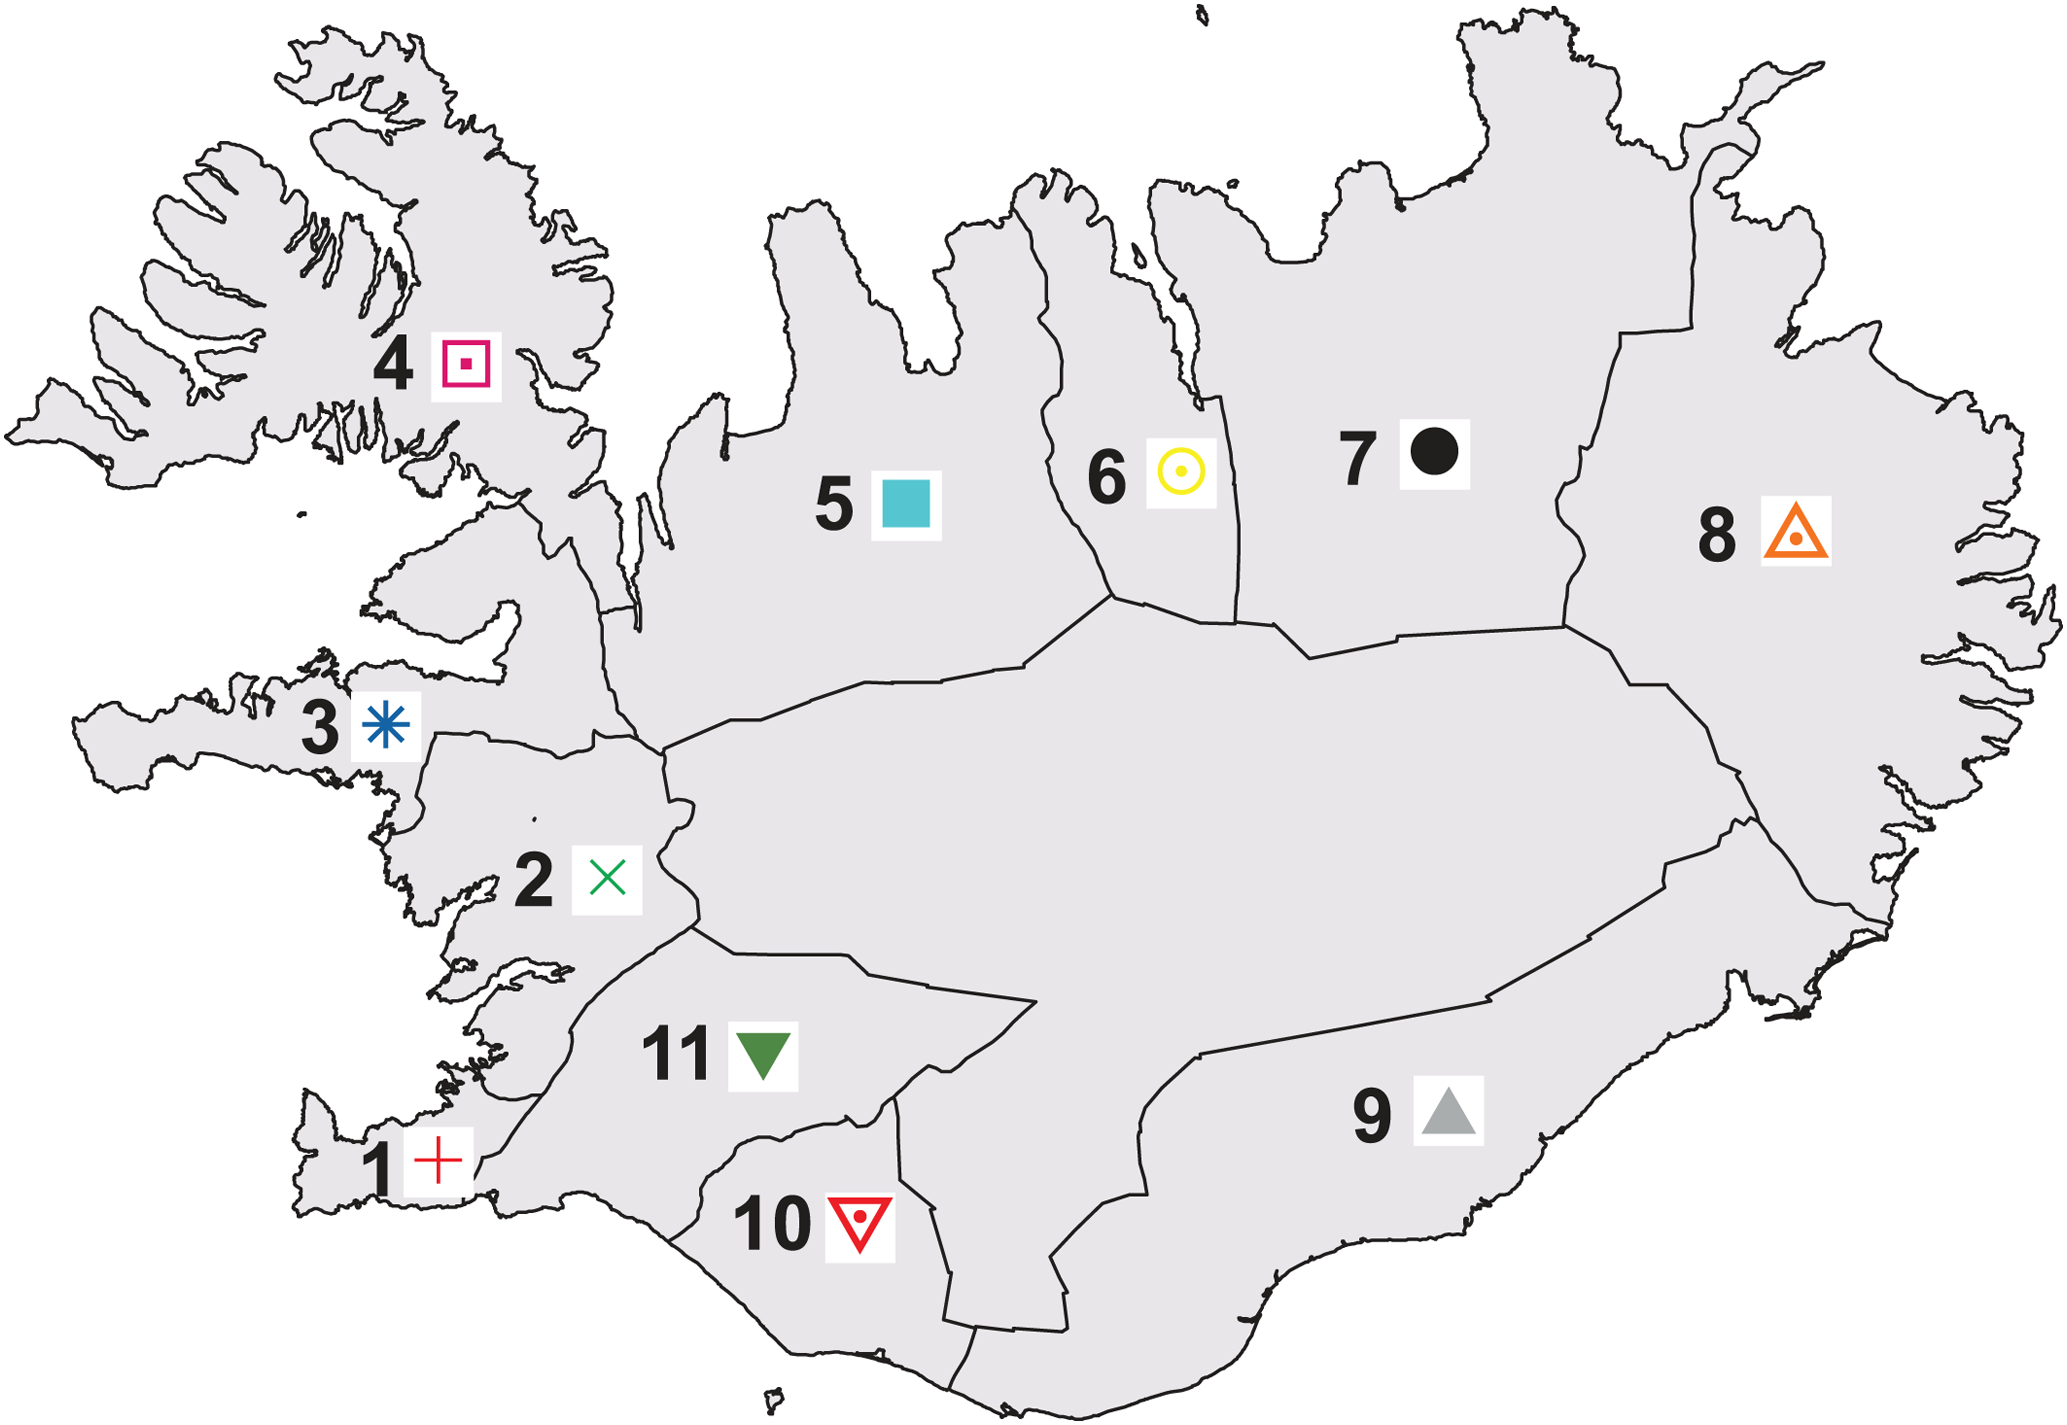 Map of 11 regions of Iceland, color-coded to match <em class=&quot;ref&quot;>Figures 2</em> and <em class=&quot;ref&quot;>3</em>.